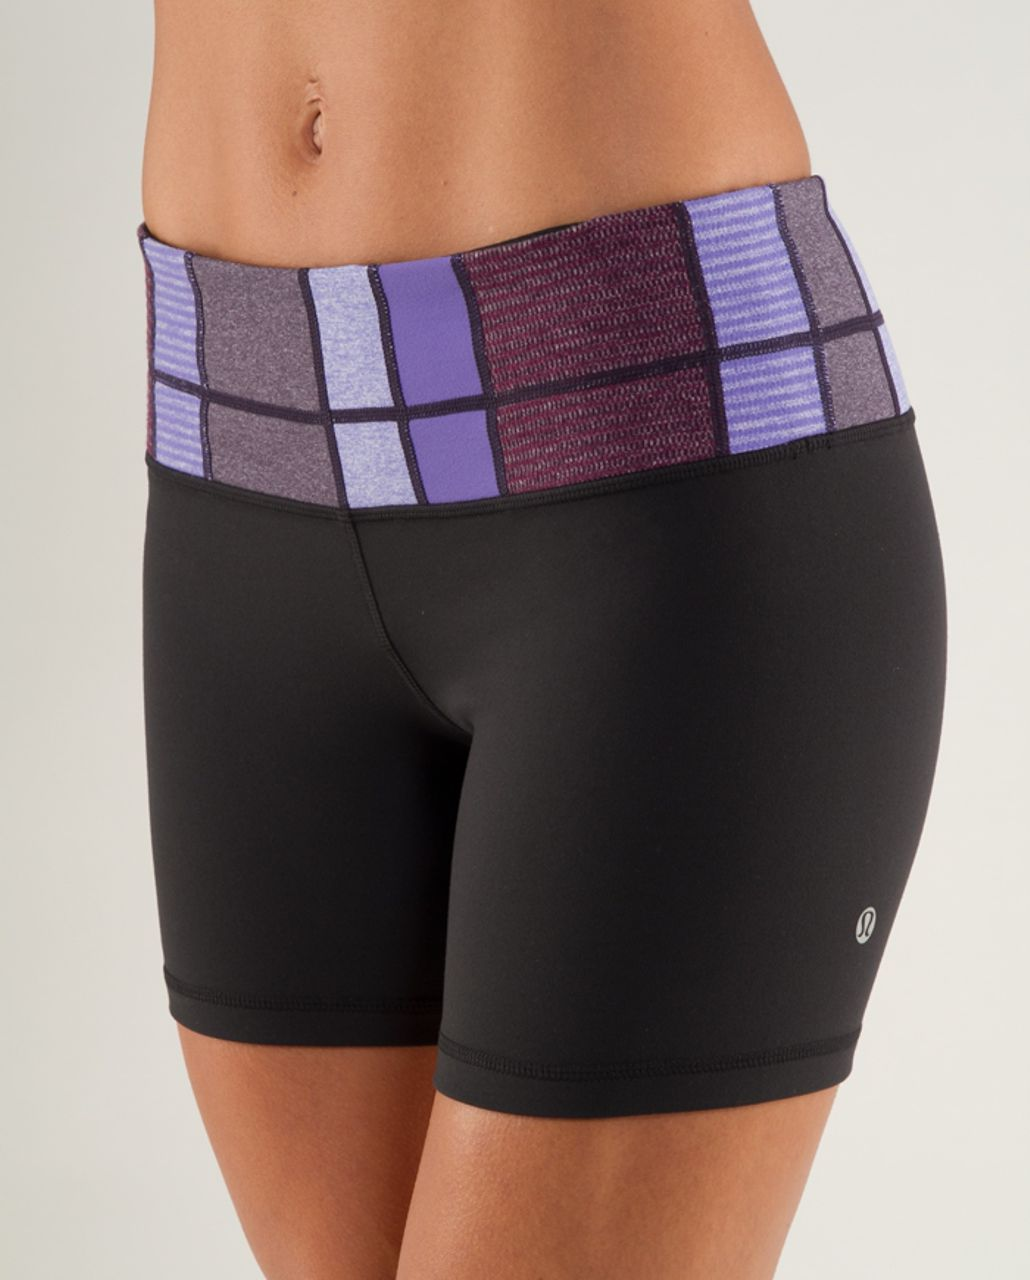 Lululemon Groove Short - Black /  Quilting Winter 3 /  Quilting Winter 3